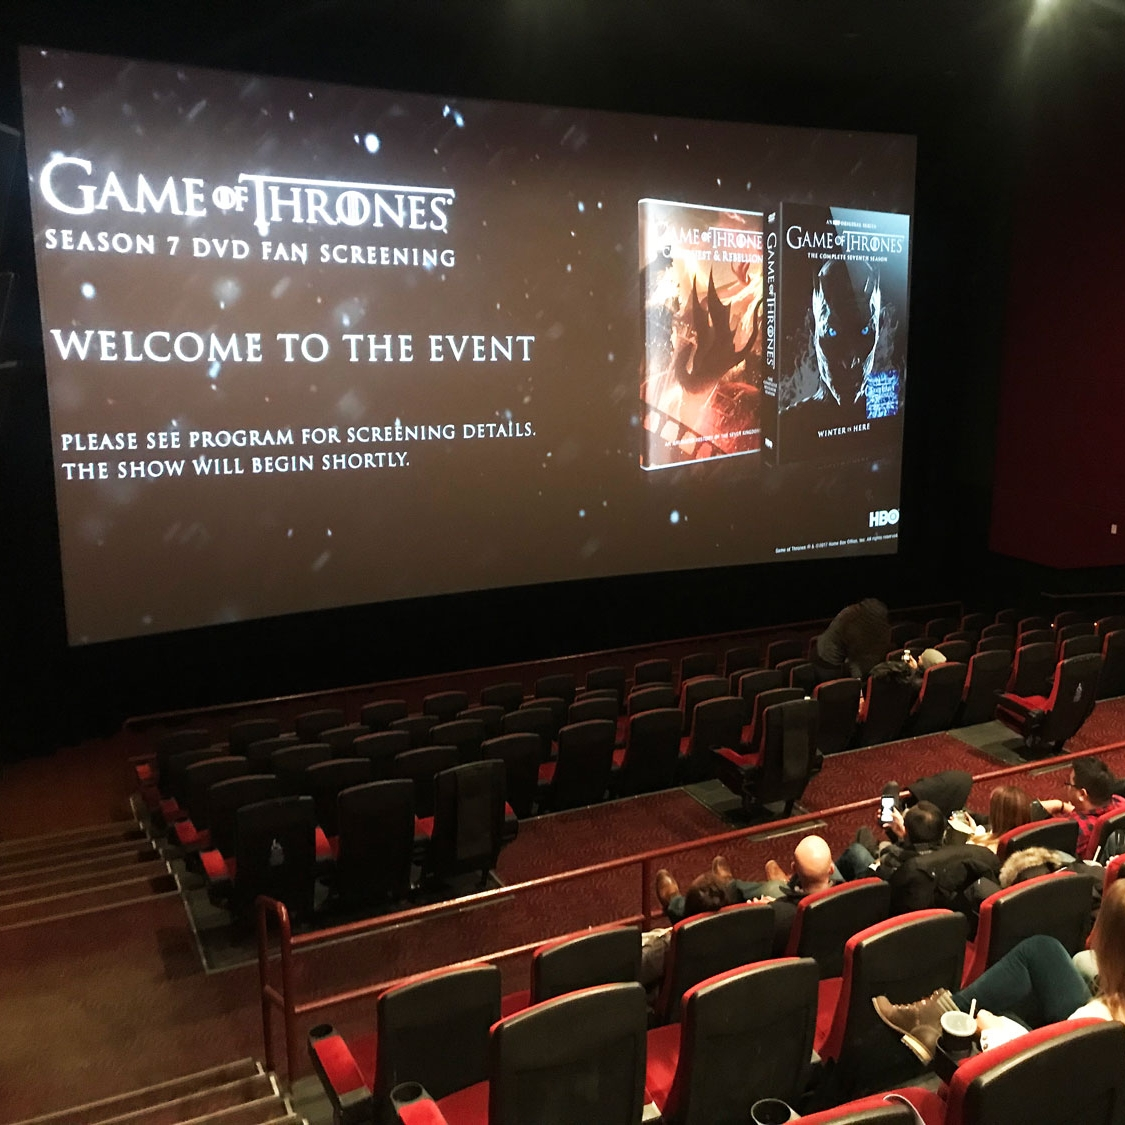 game-of-thrones-season-7-fan-screening-theater.jpg